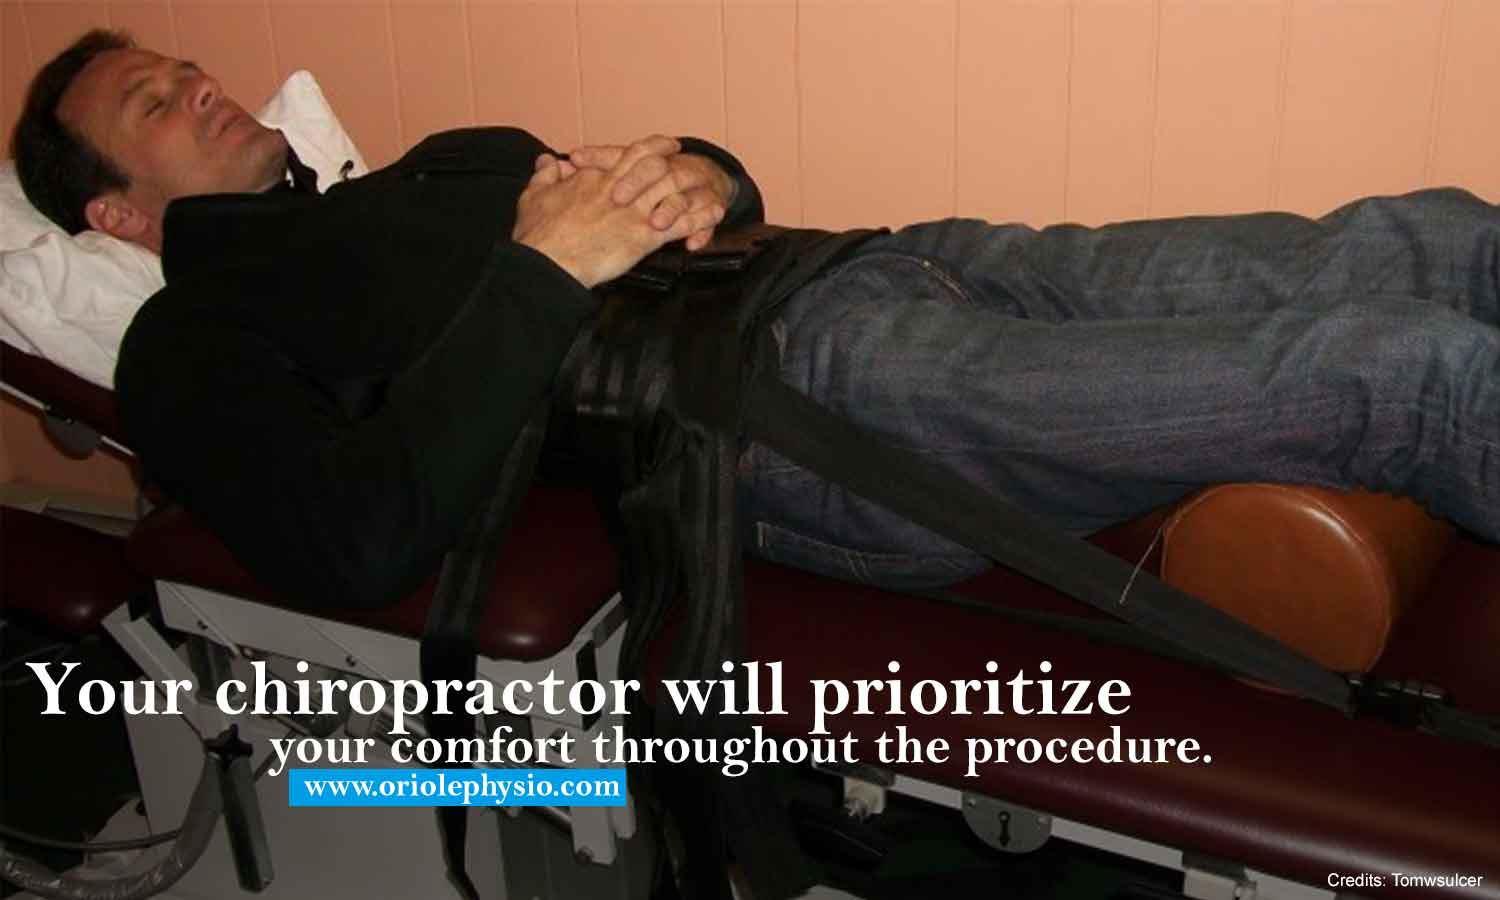 Your chiropractor will prioritize your comfort throughout the procedure.